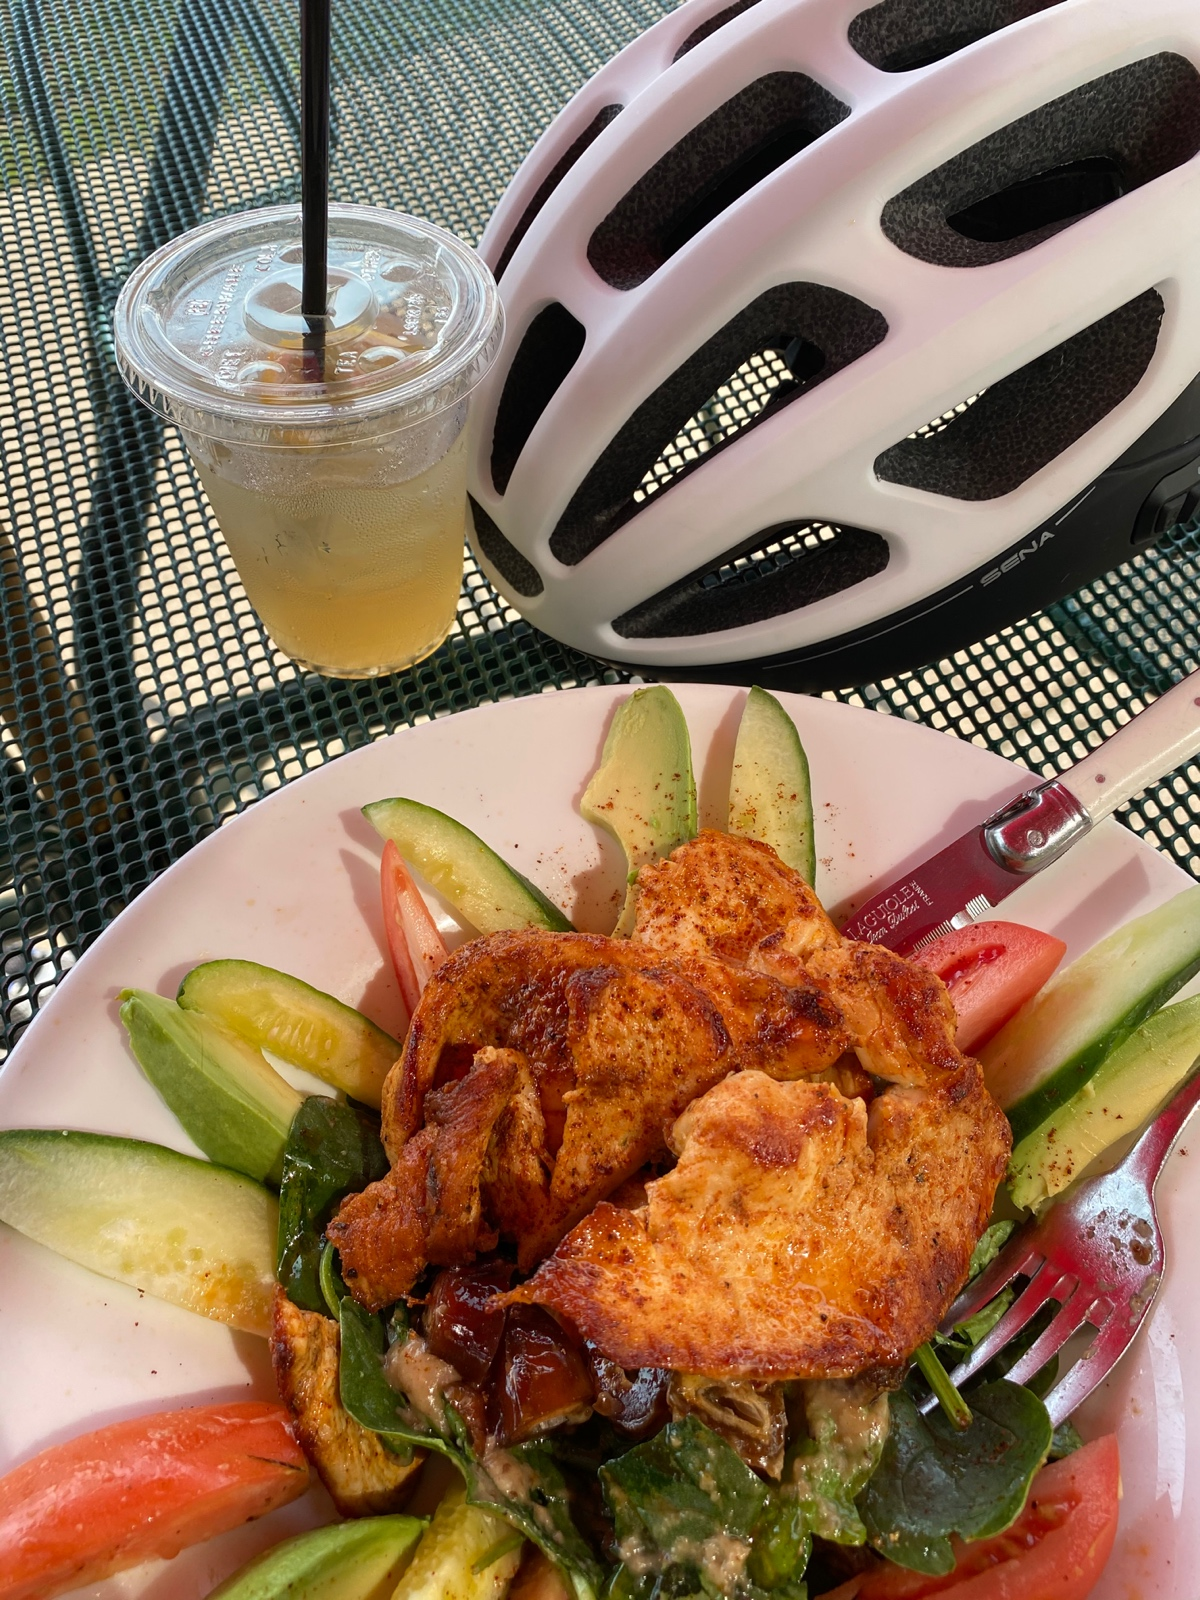 Fuel is a marvelous farm to table restaurant just steps from the Wilmette trail.